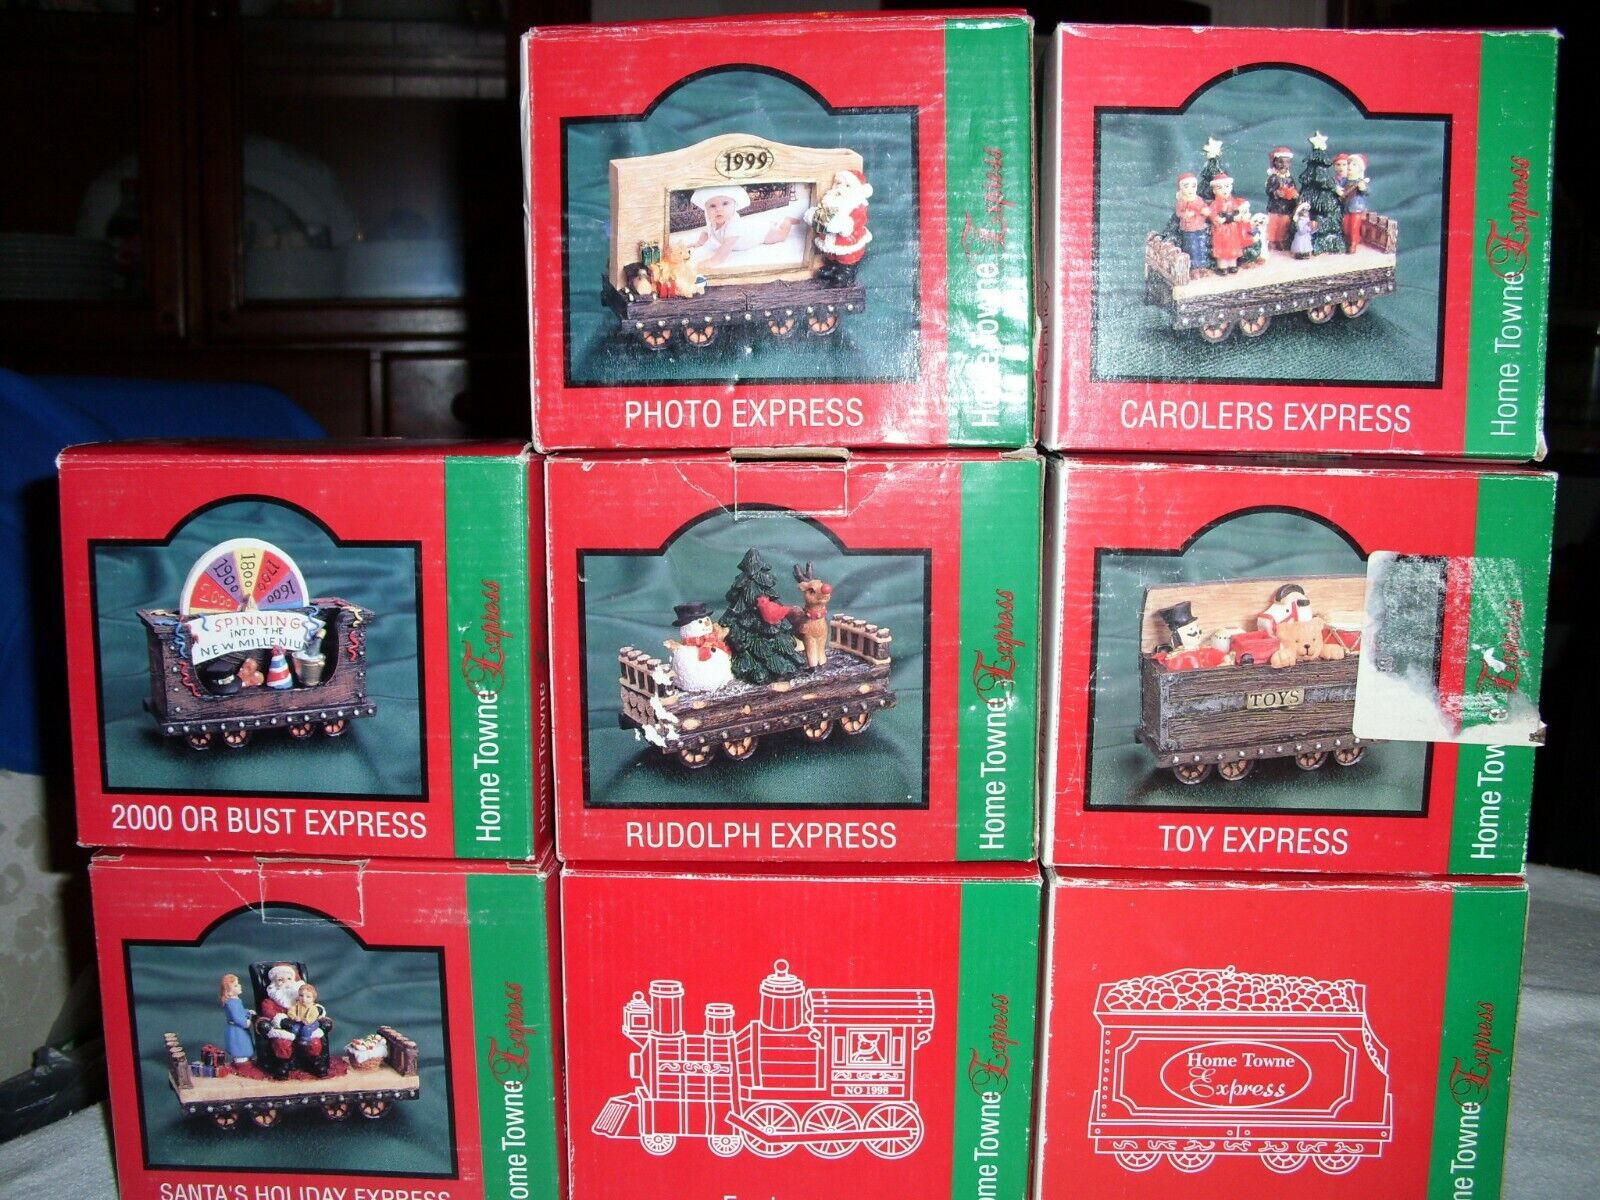 JC Penney Home Towne Express Christmas Train Cars 1998 Edition 8 Cars RARE